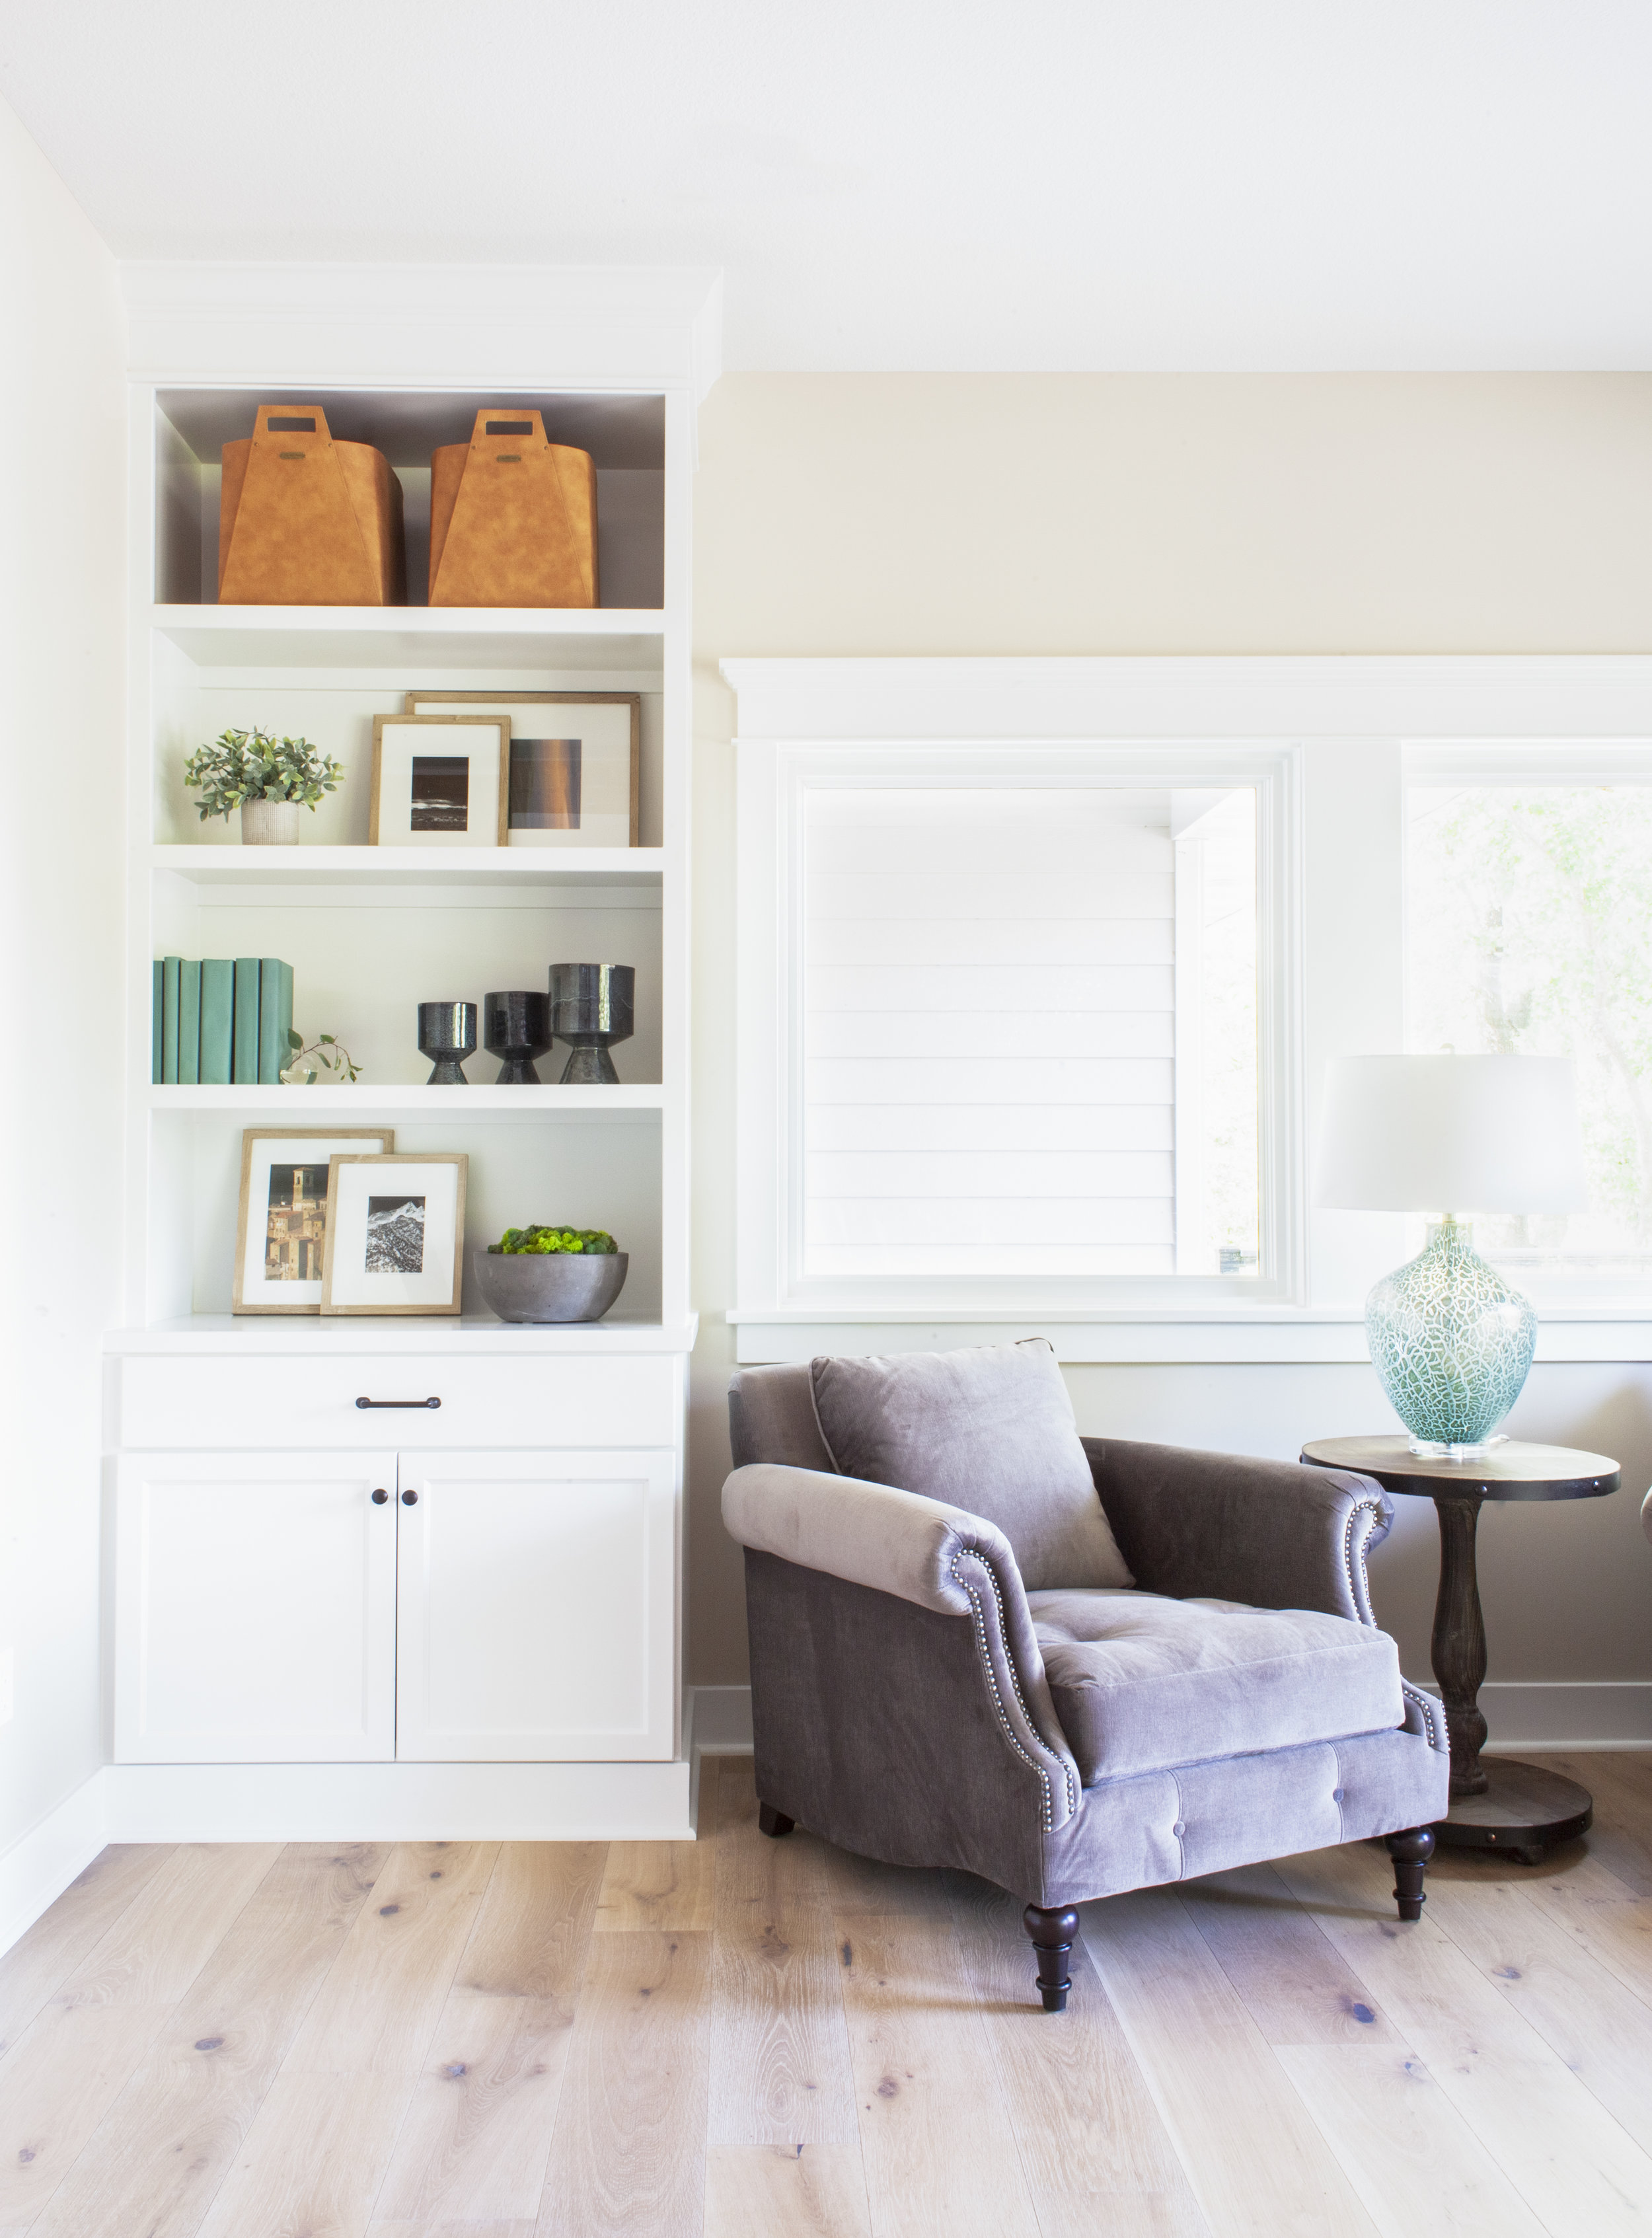 before-and-after-home-reveal-scout-and-nimble-lake-view-luxe-country-interior-design-built-in-shelves-shelf-styling.jpg